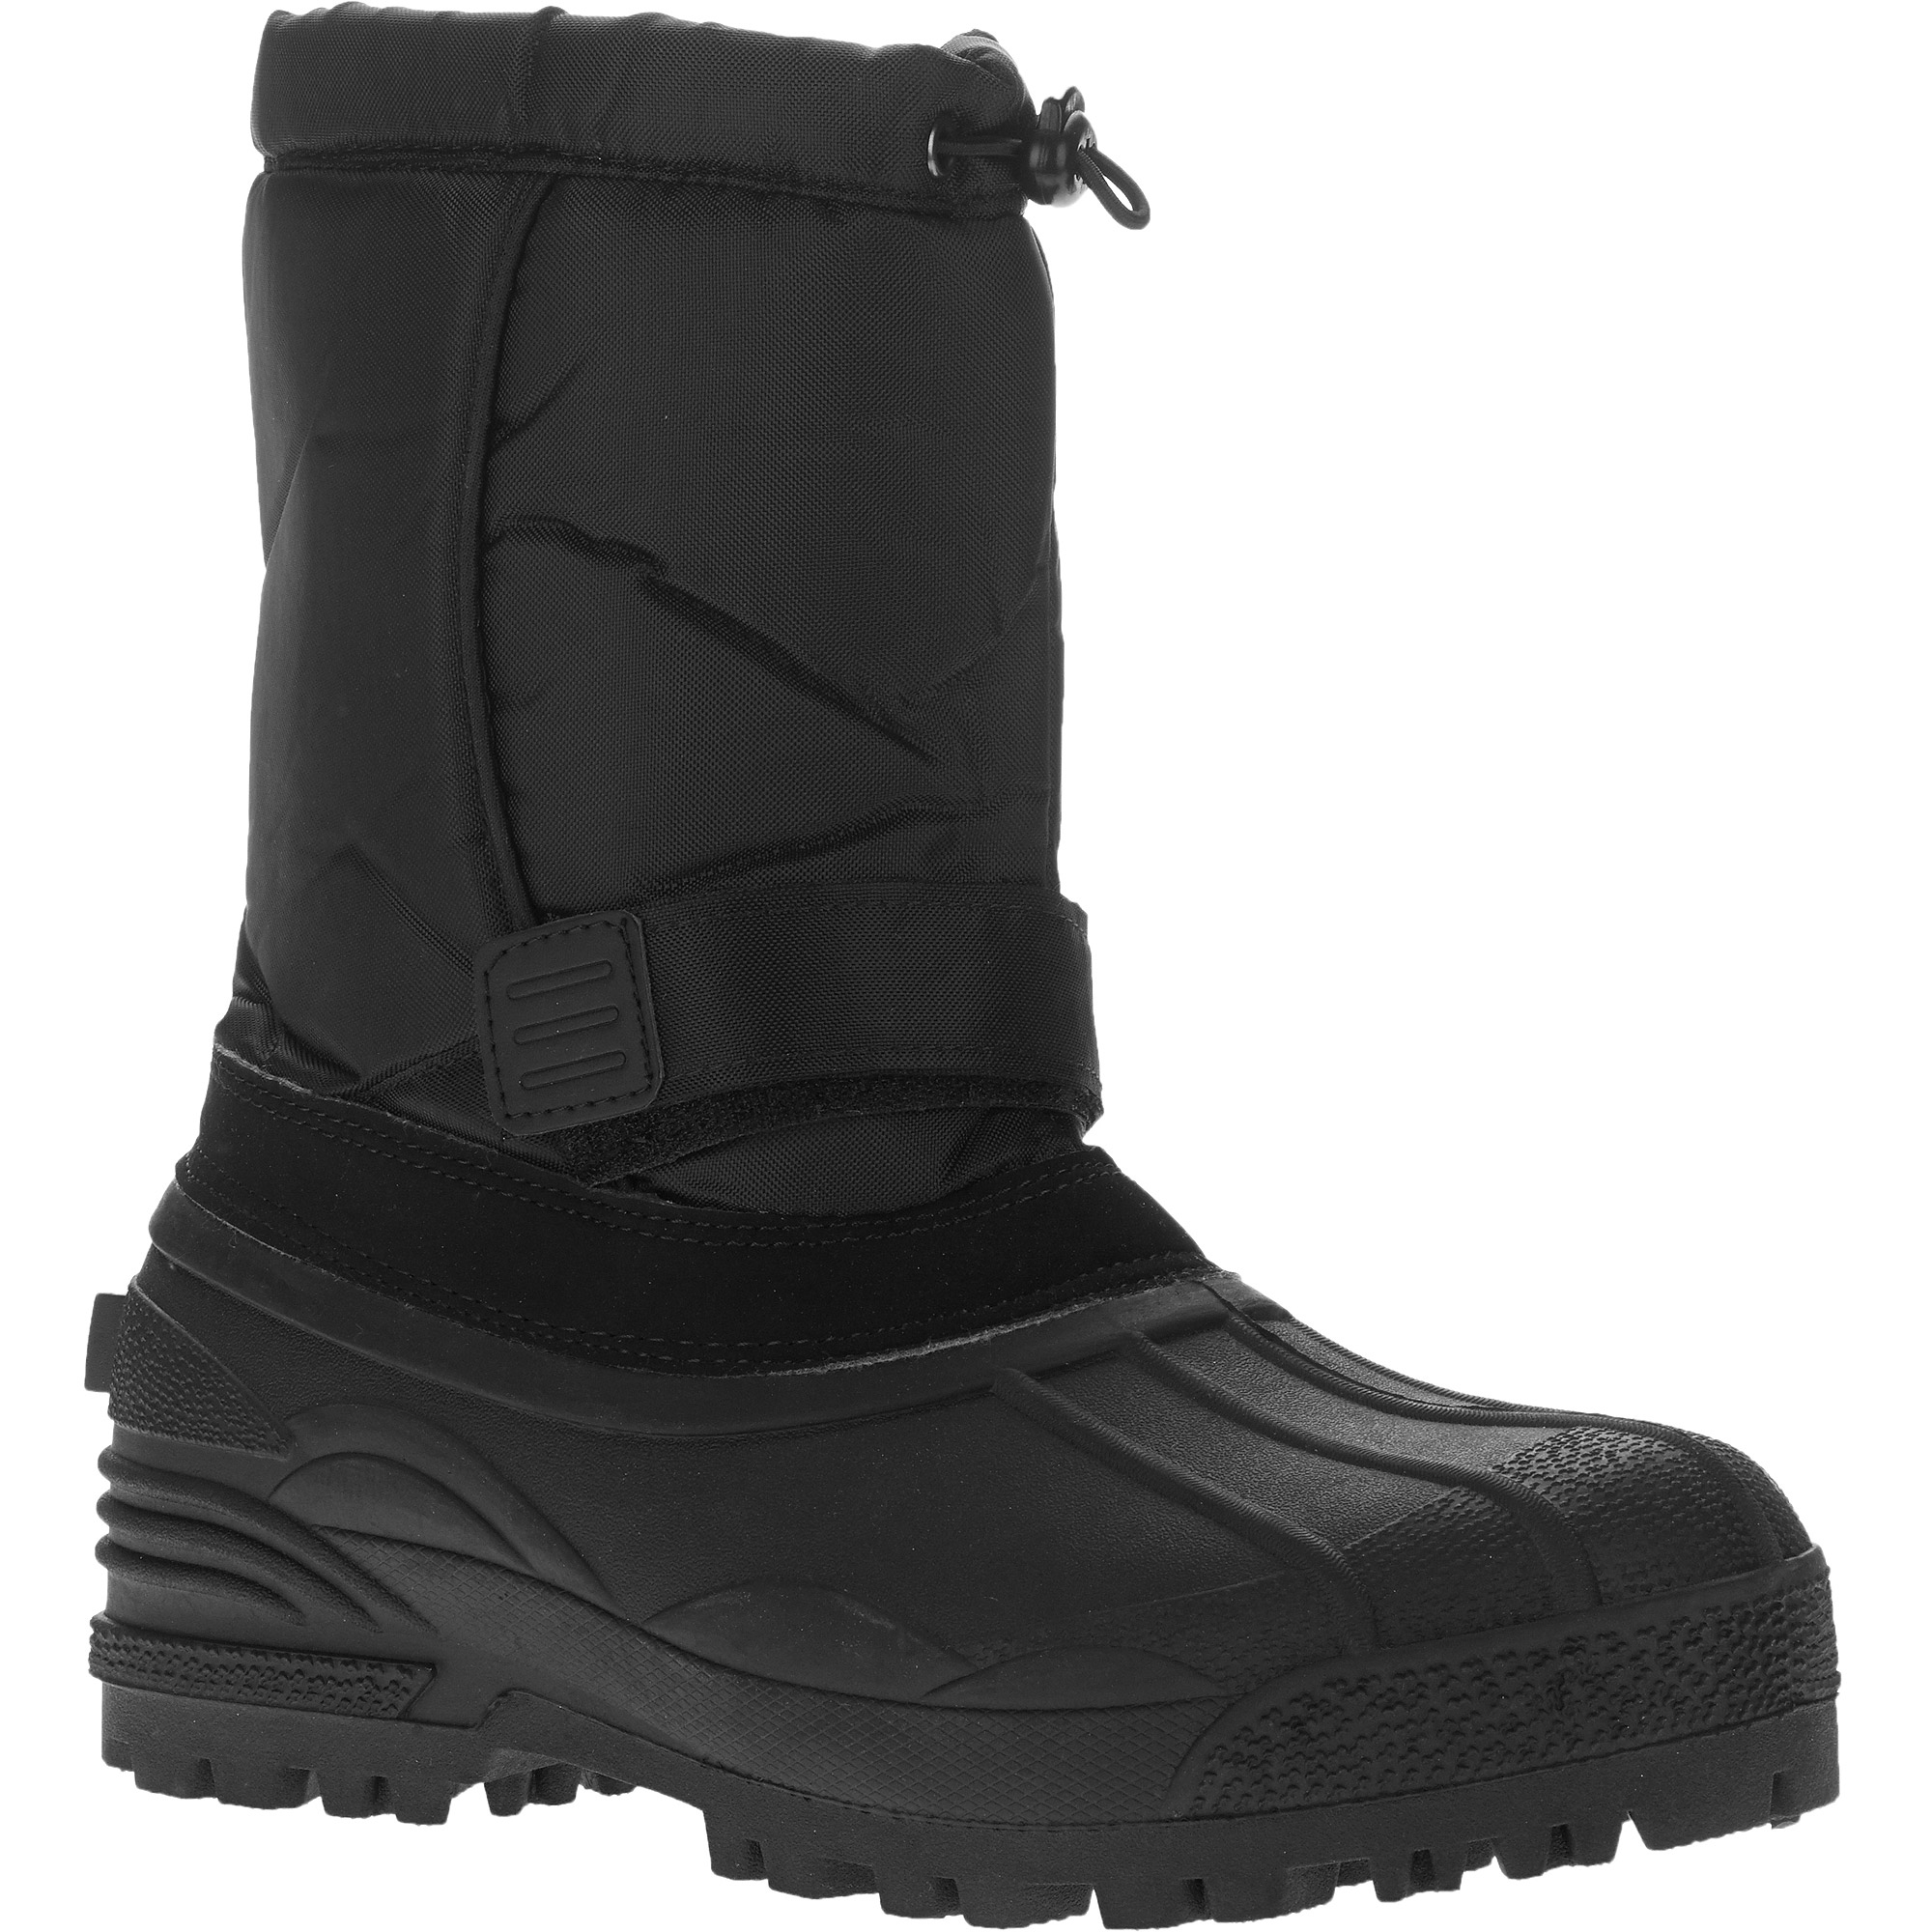 Mens Winter Boots Clearance KIBemAlg